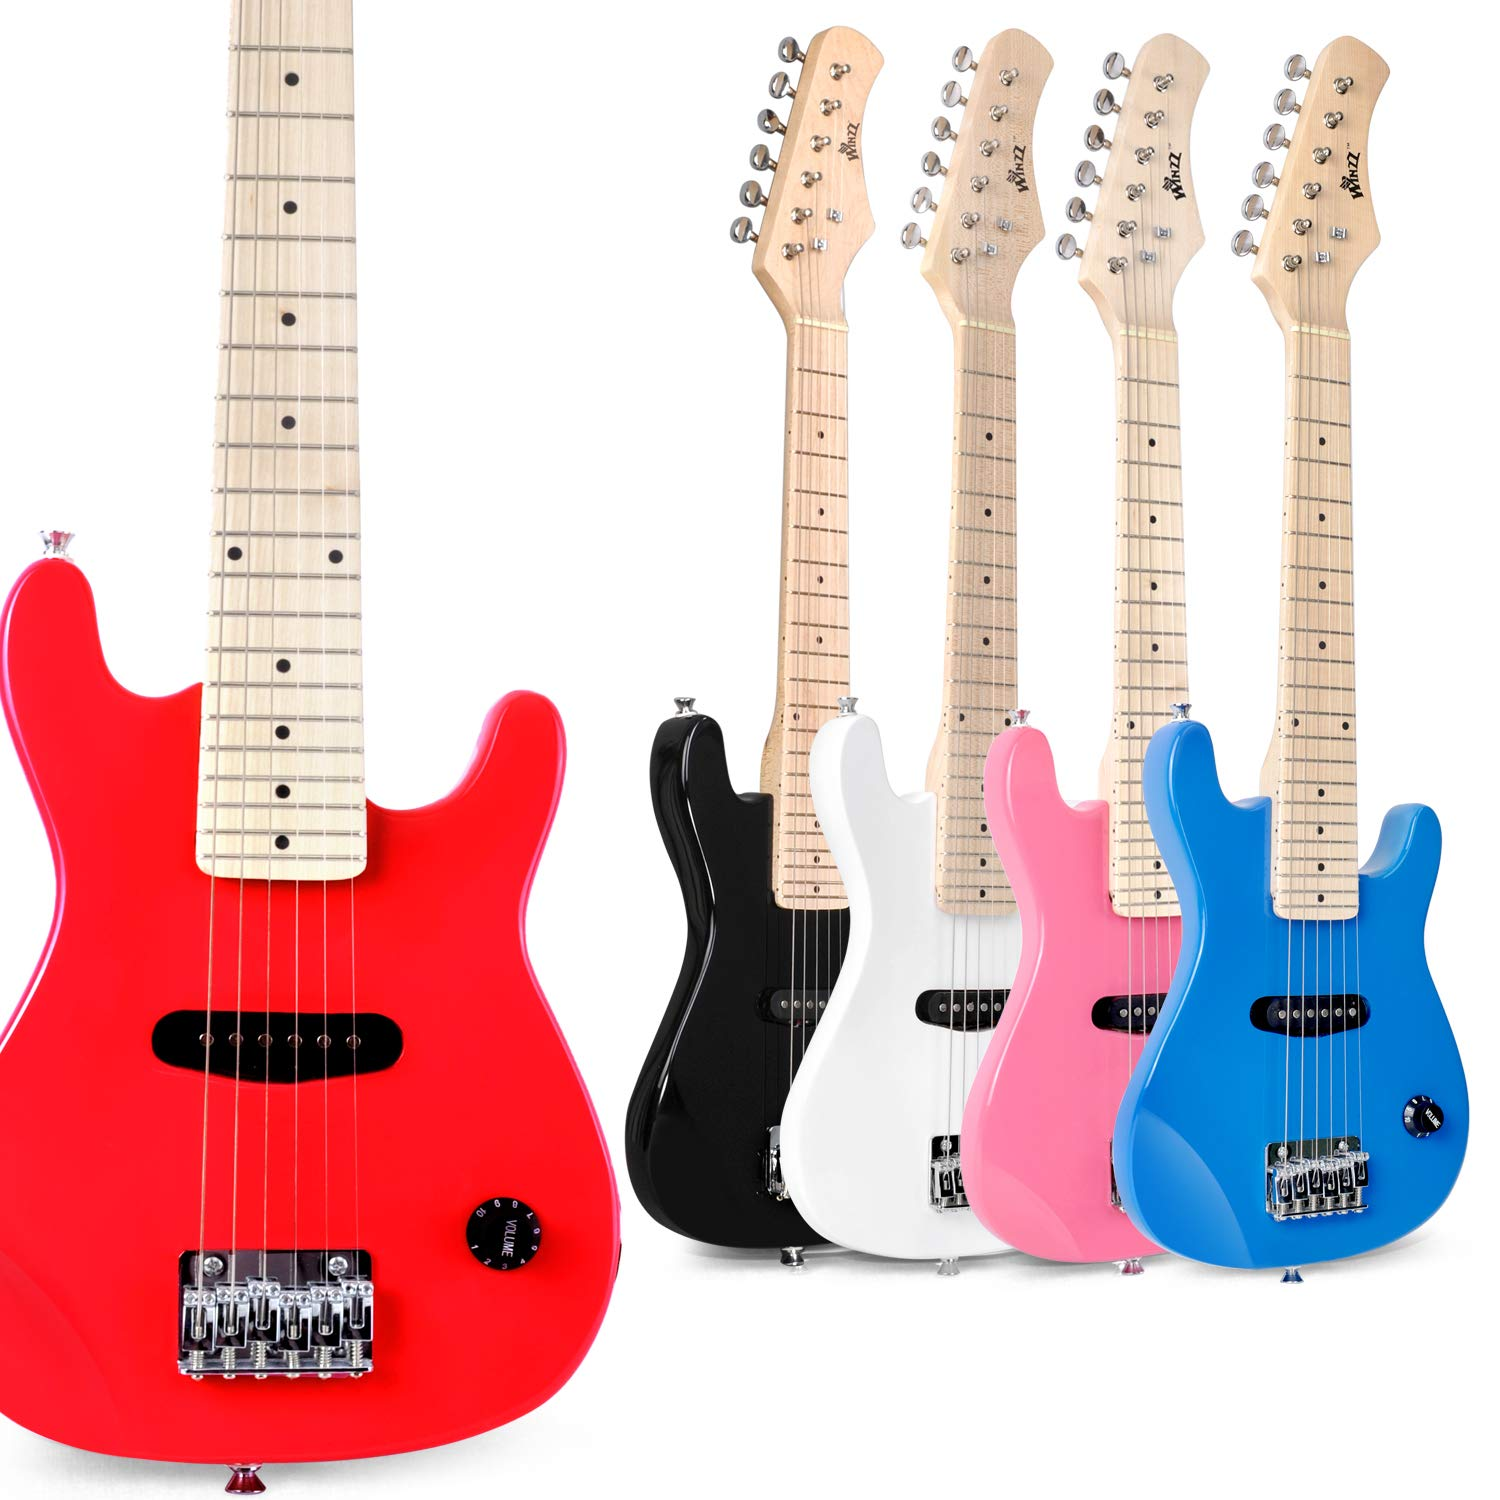 WINZZ 30 Inches Real Kids Electric Guitar with Beginner Kit, Red